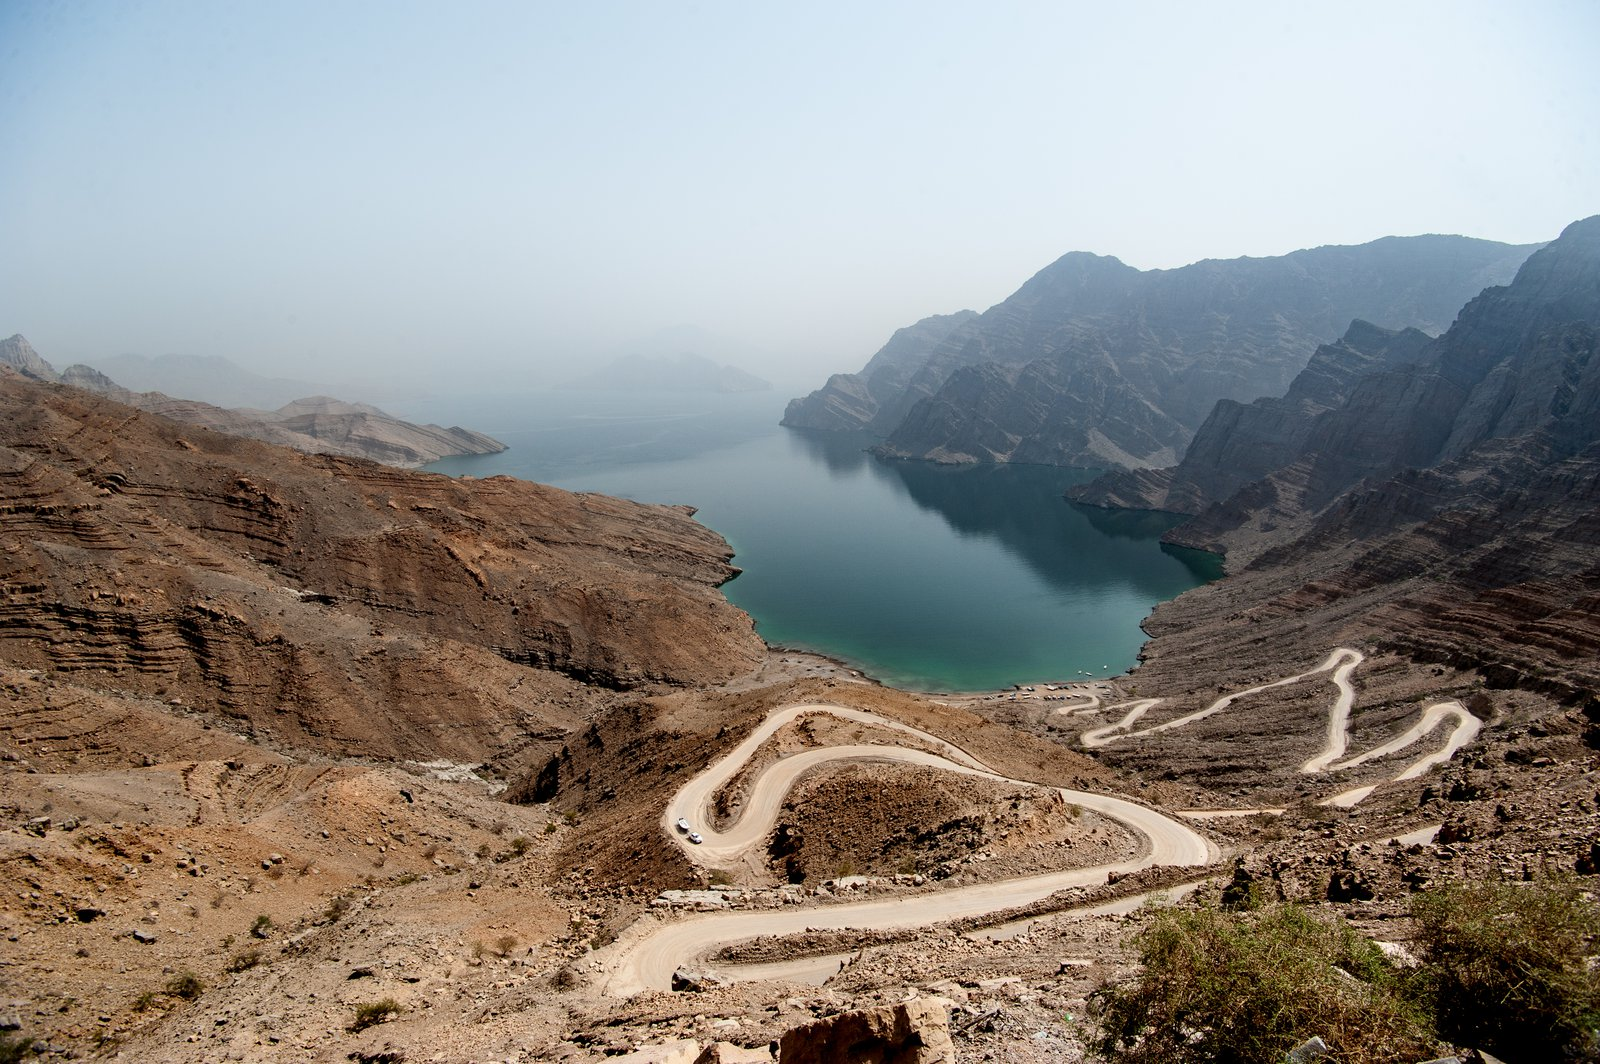 Winding road near Khasab, Oman